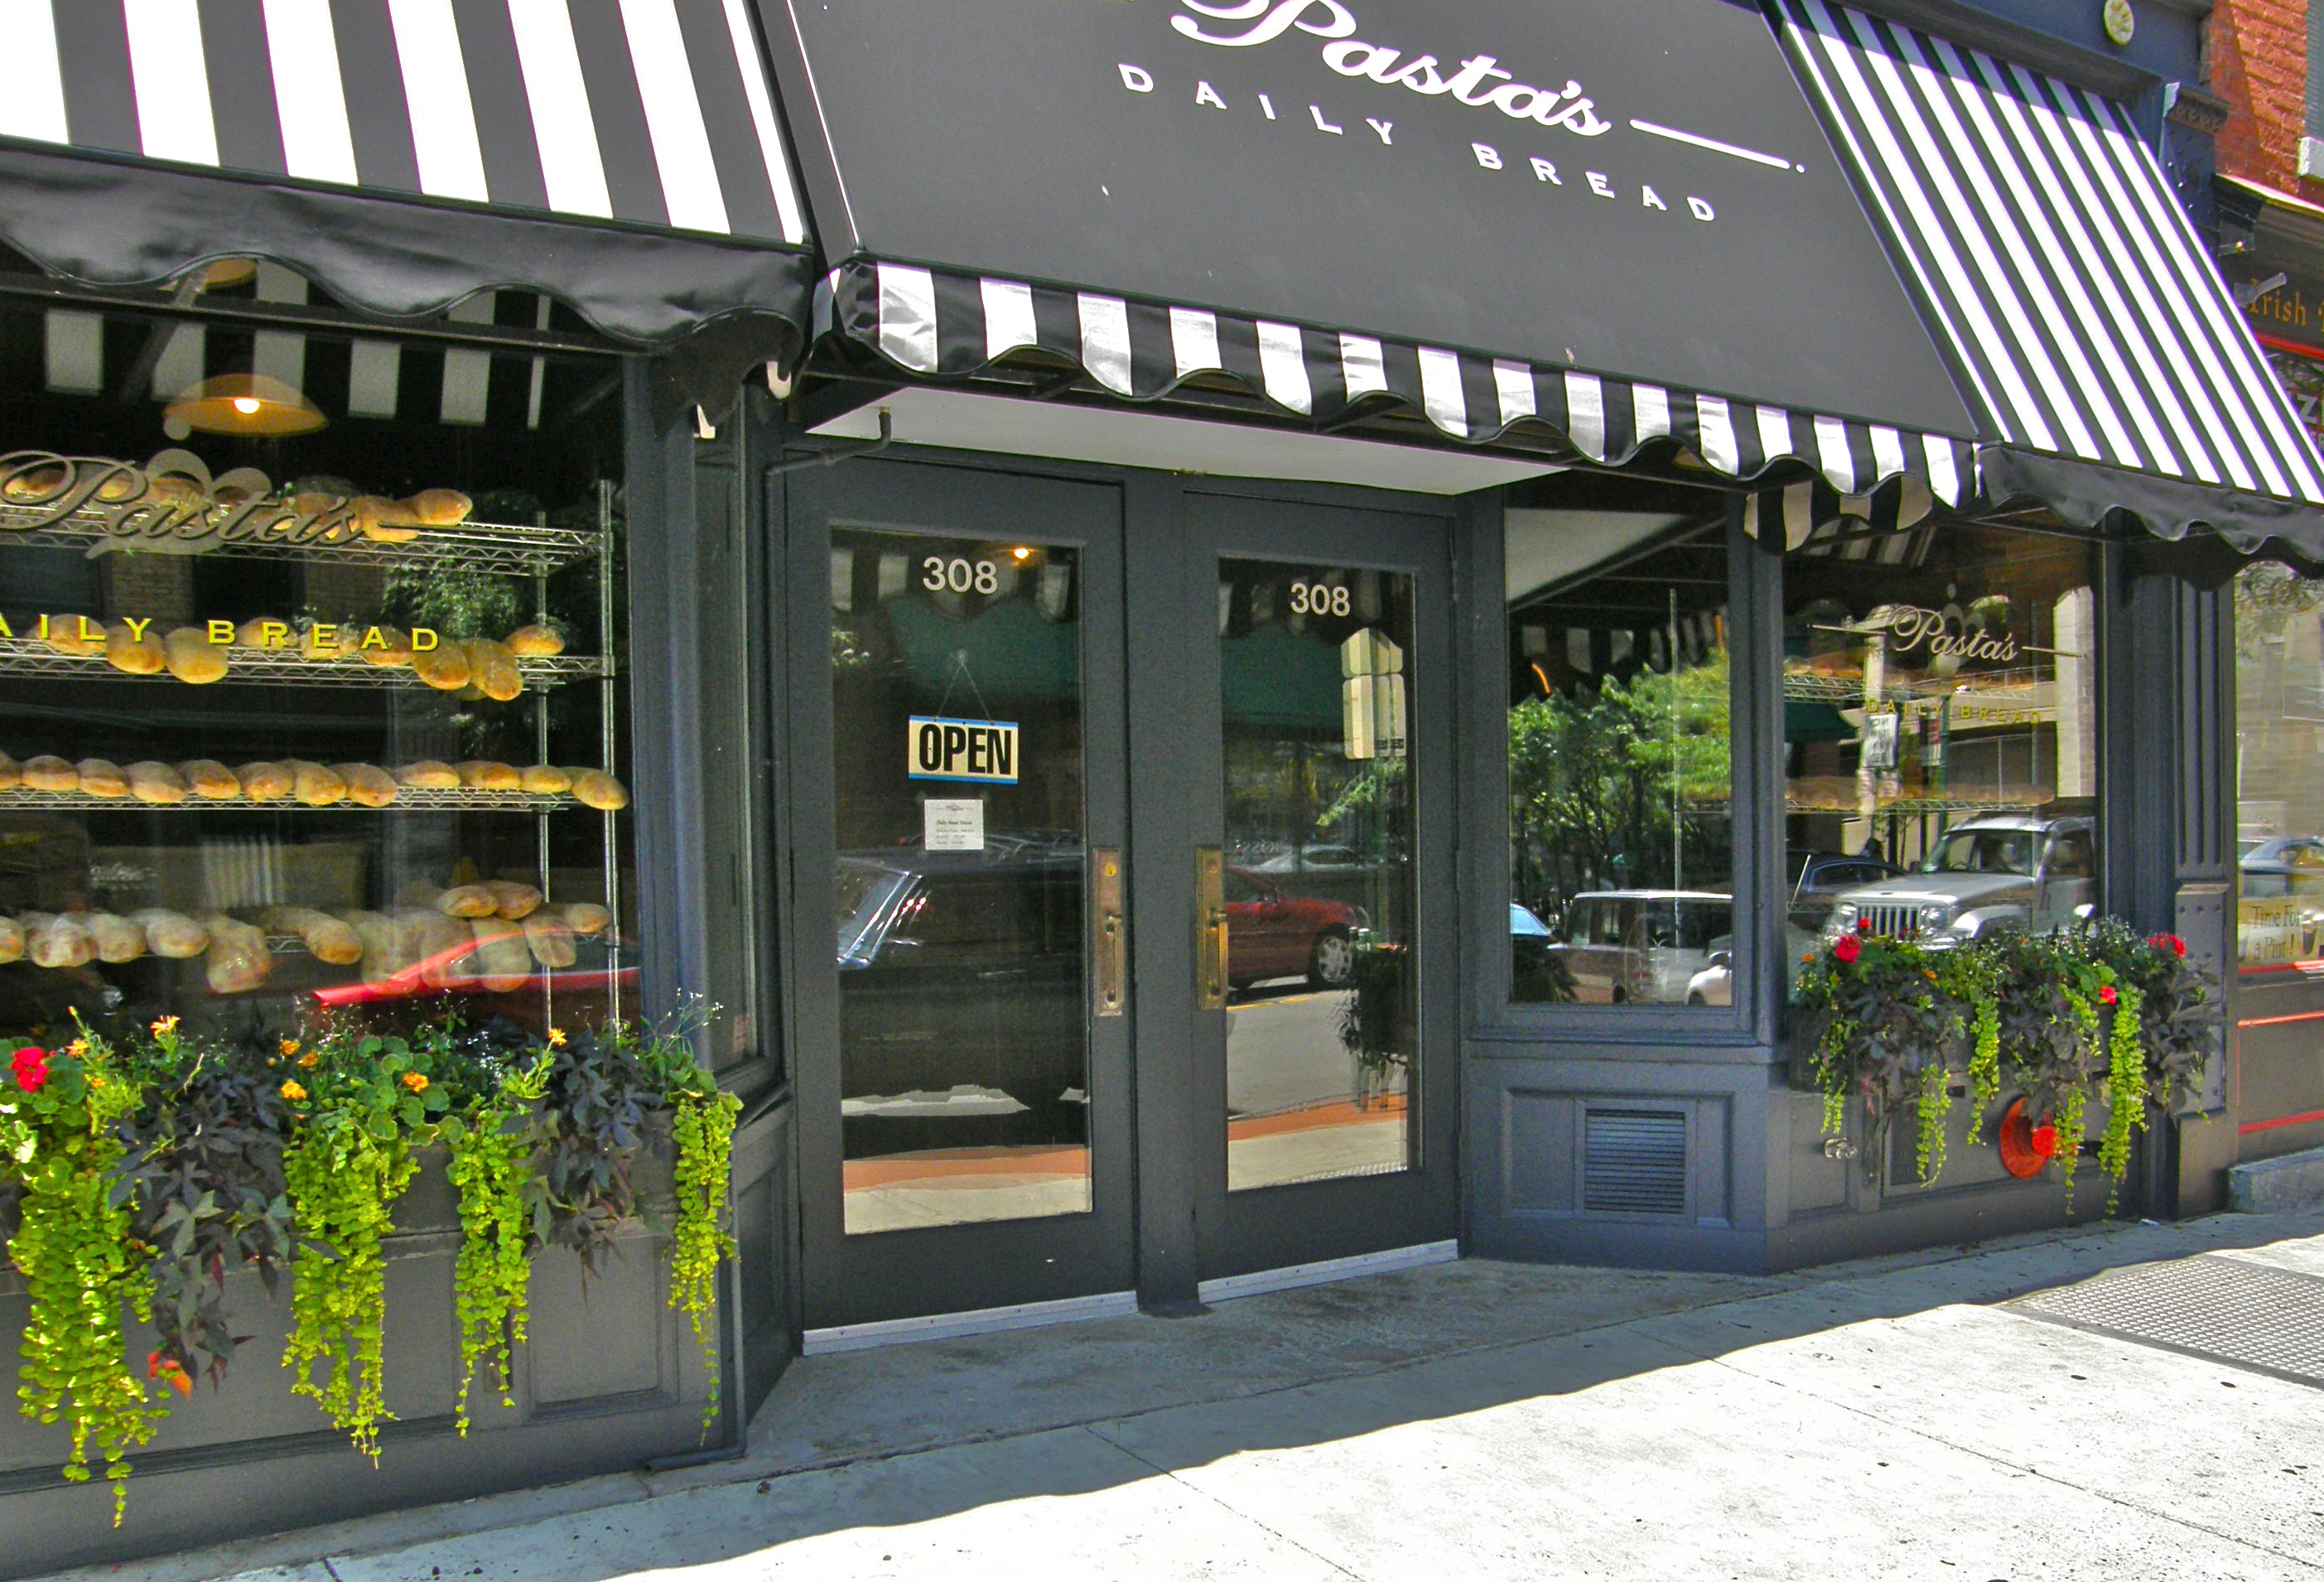 Pastas Daily Bread Store Front 2009 Amy Fancher S Studio Blog